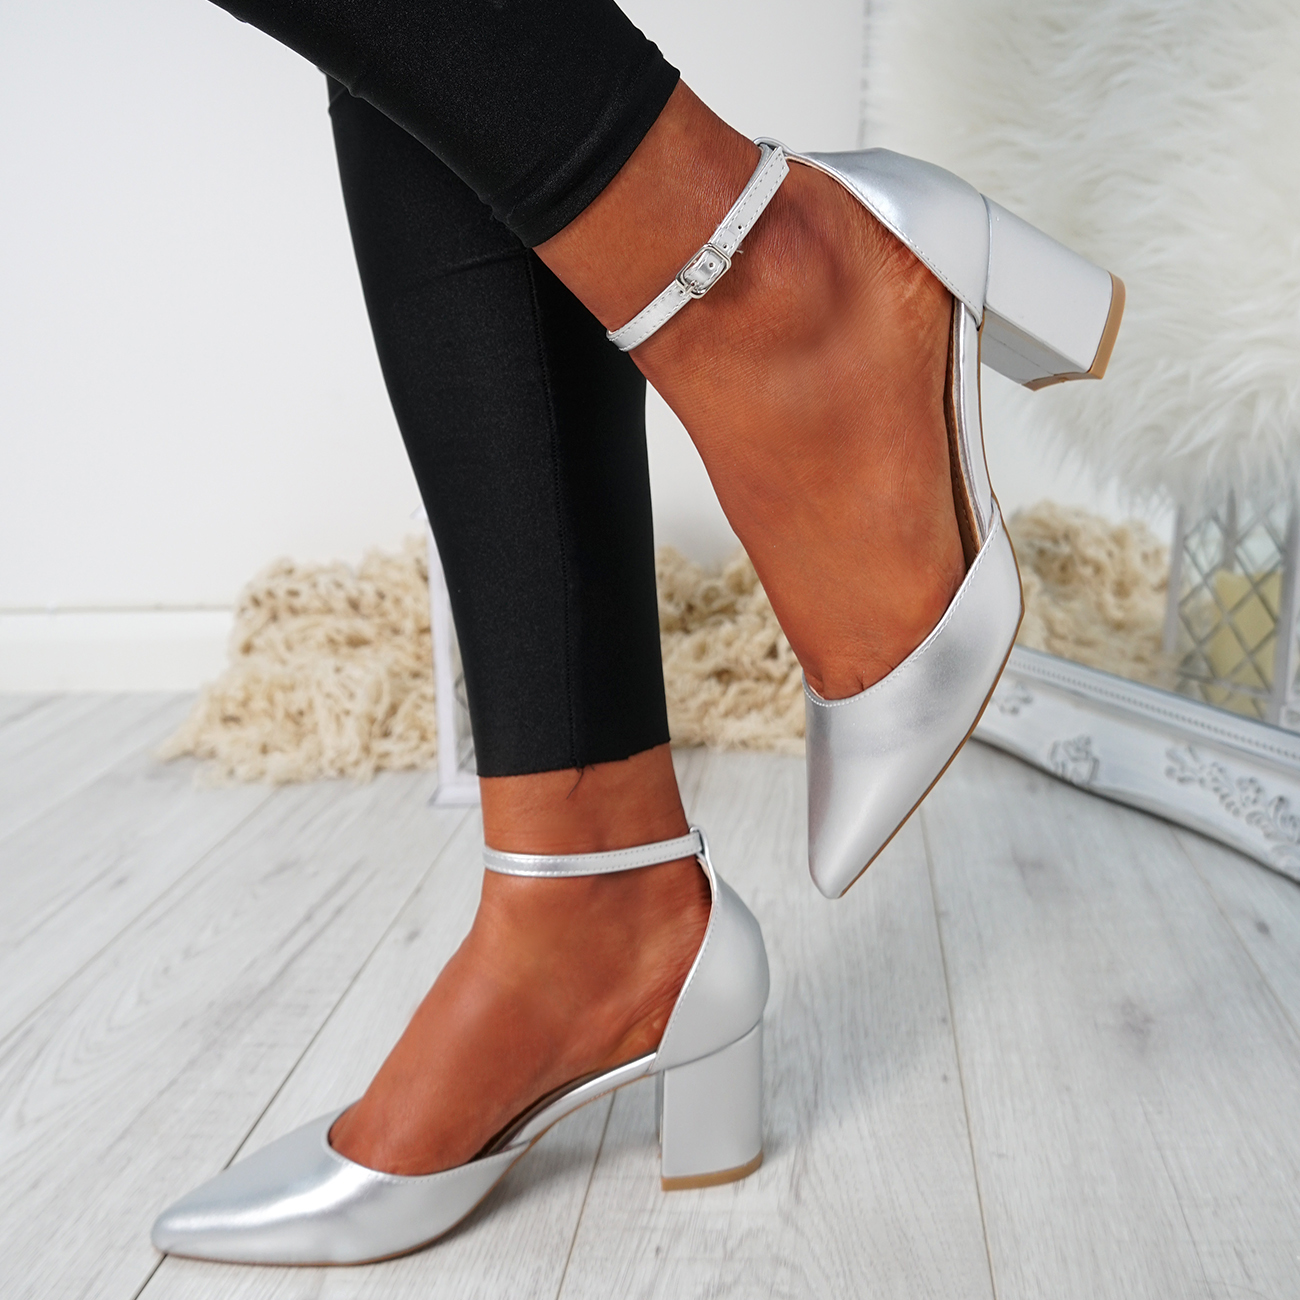 WOMENS-LADIES-ANKLE-STRAP-BLOCK-HEEL-PUMPS-POINTED-TOE-WORK-PARTY-SHOES-SIZE thumbnail 23